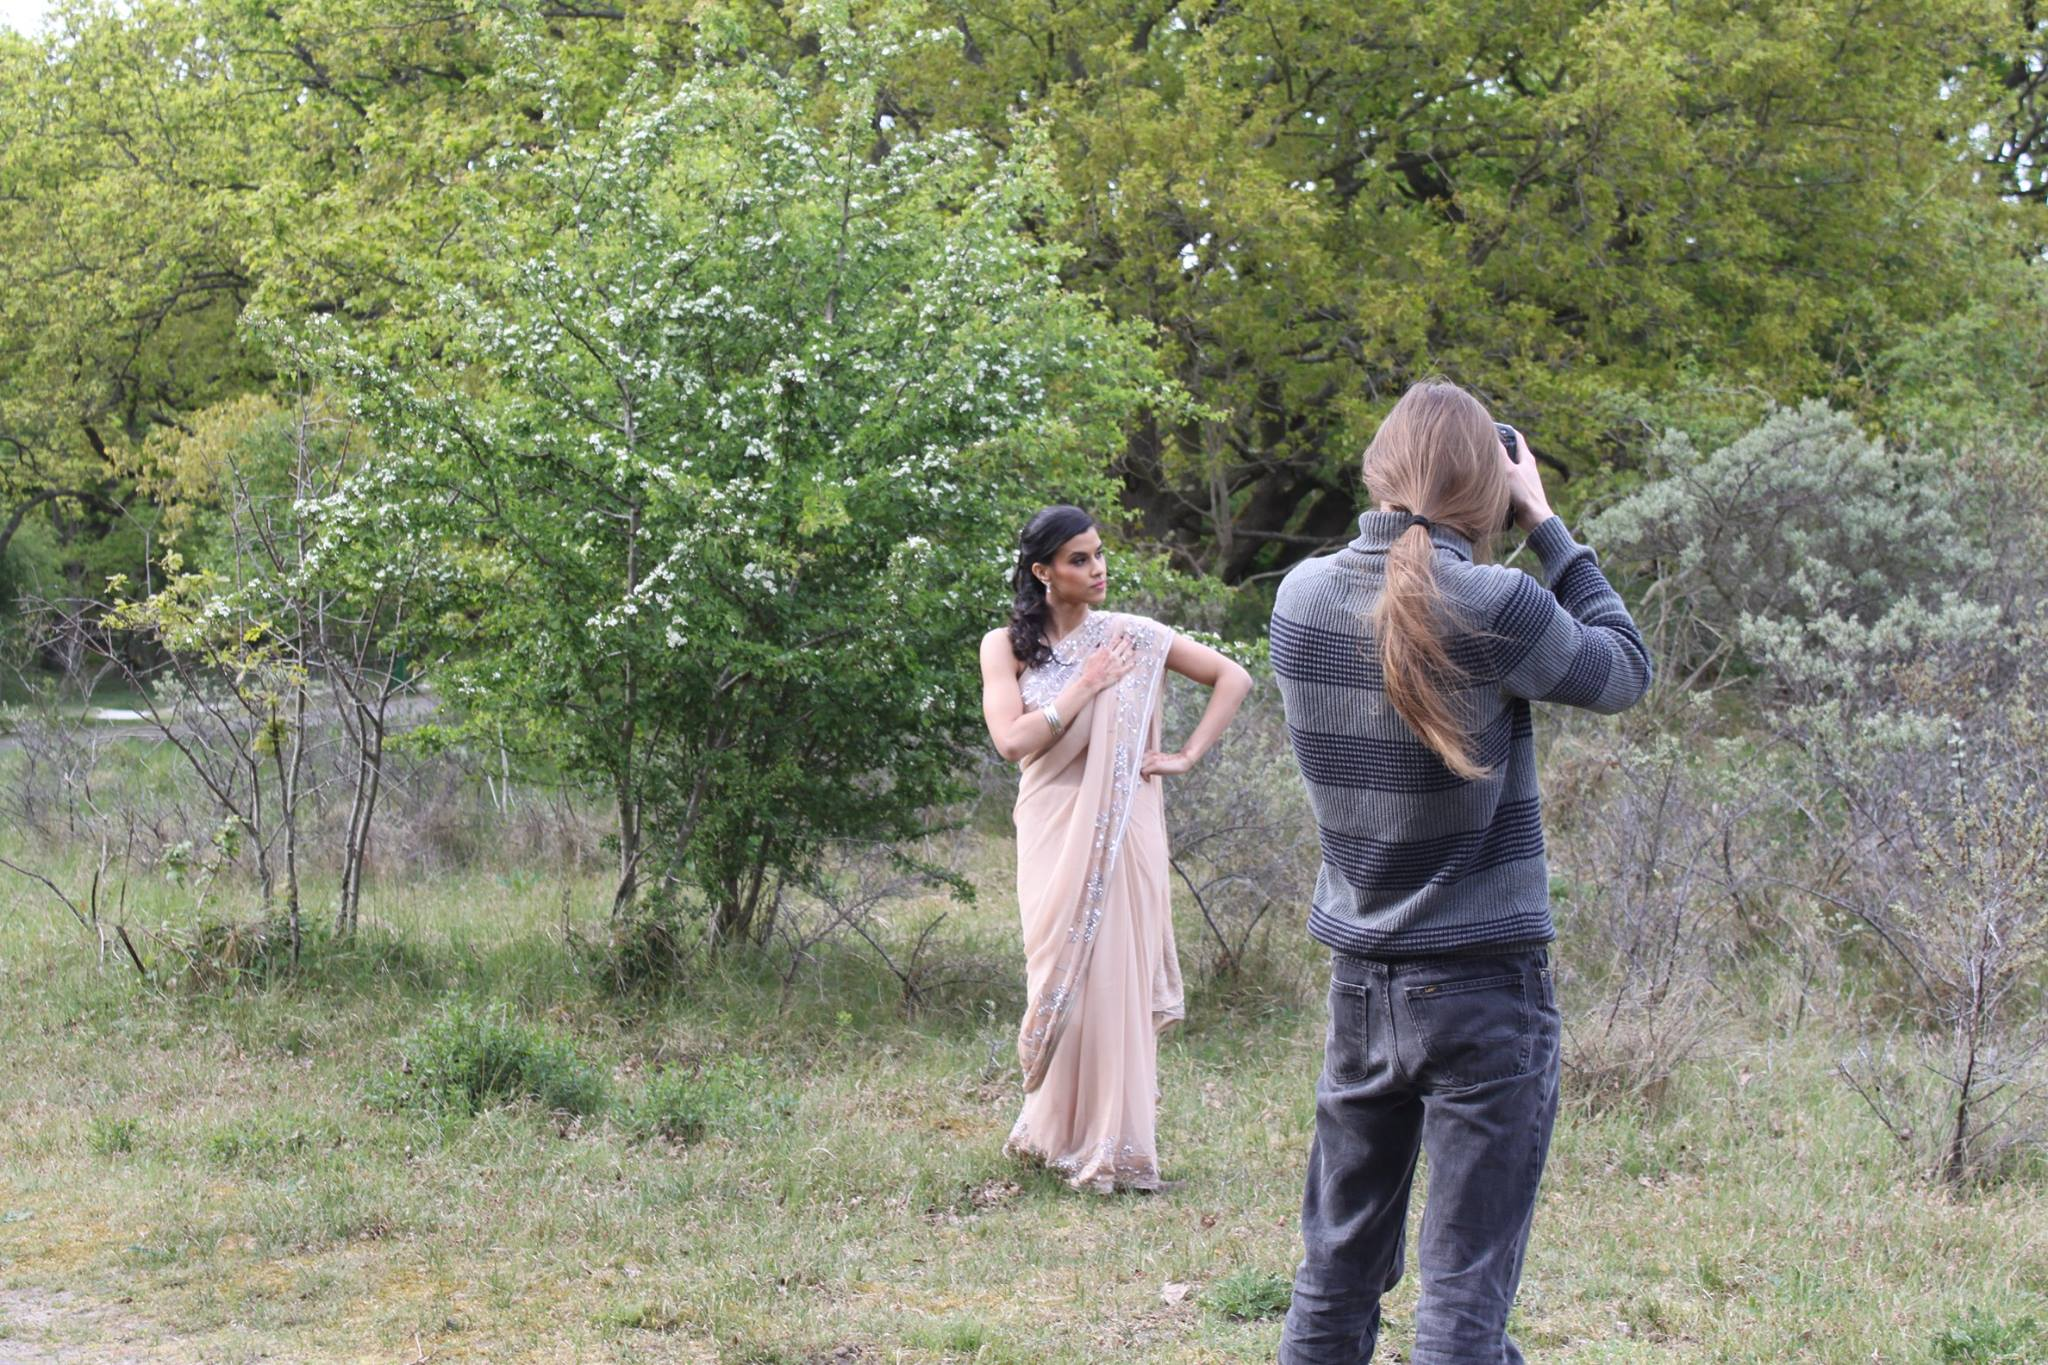 Behind the scenes The Fashion Orientalist shoot, Image by Almira's Beautique